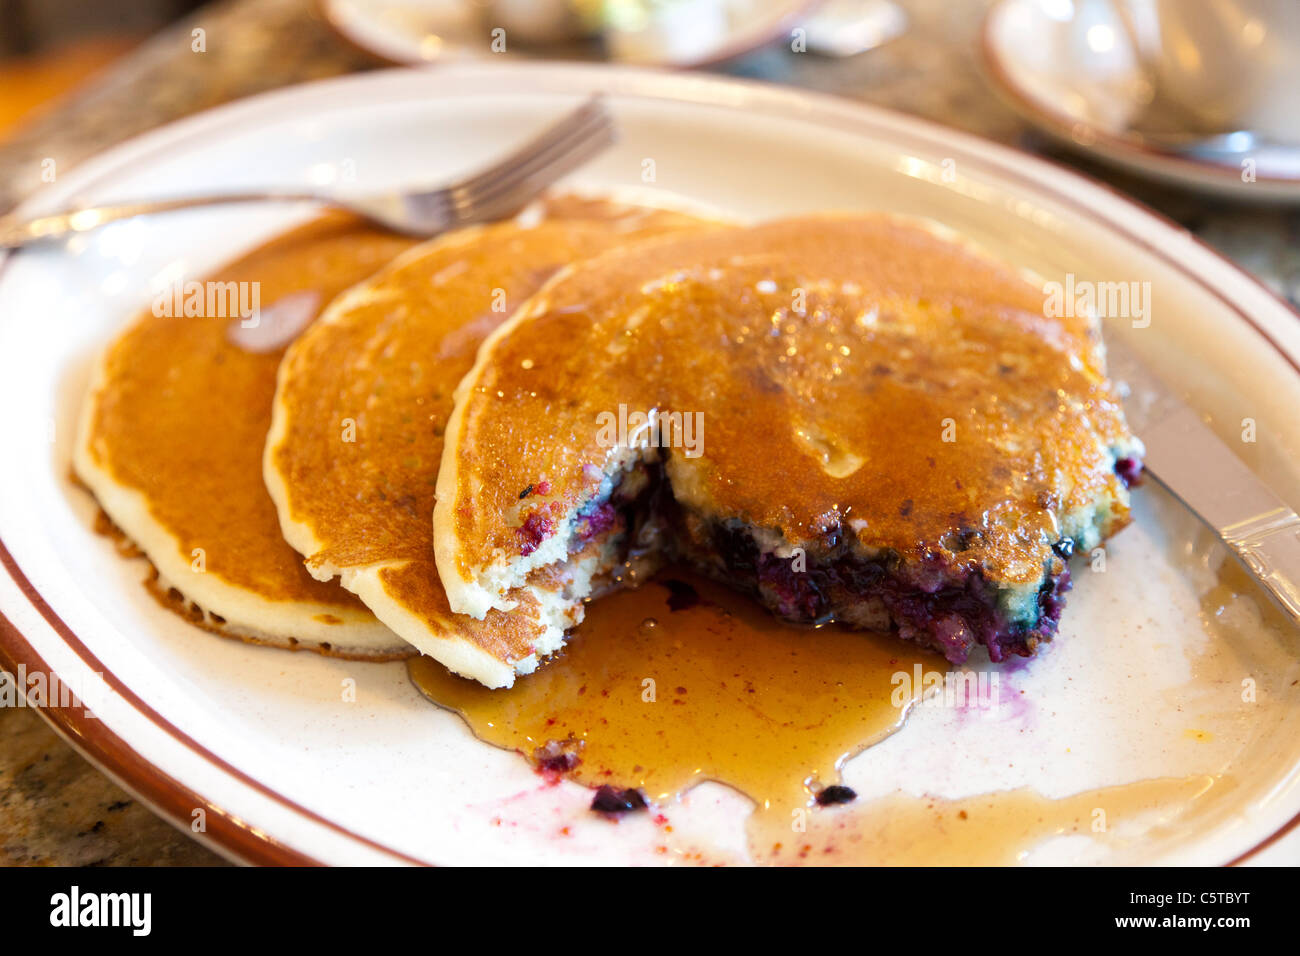 Blueberry pancakes and maple syrup in cafe in New York City Stock Photo